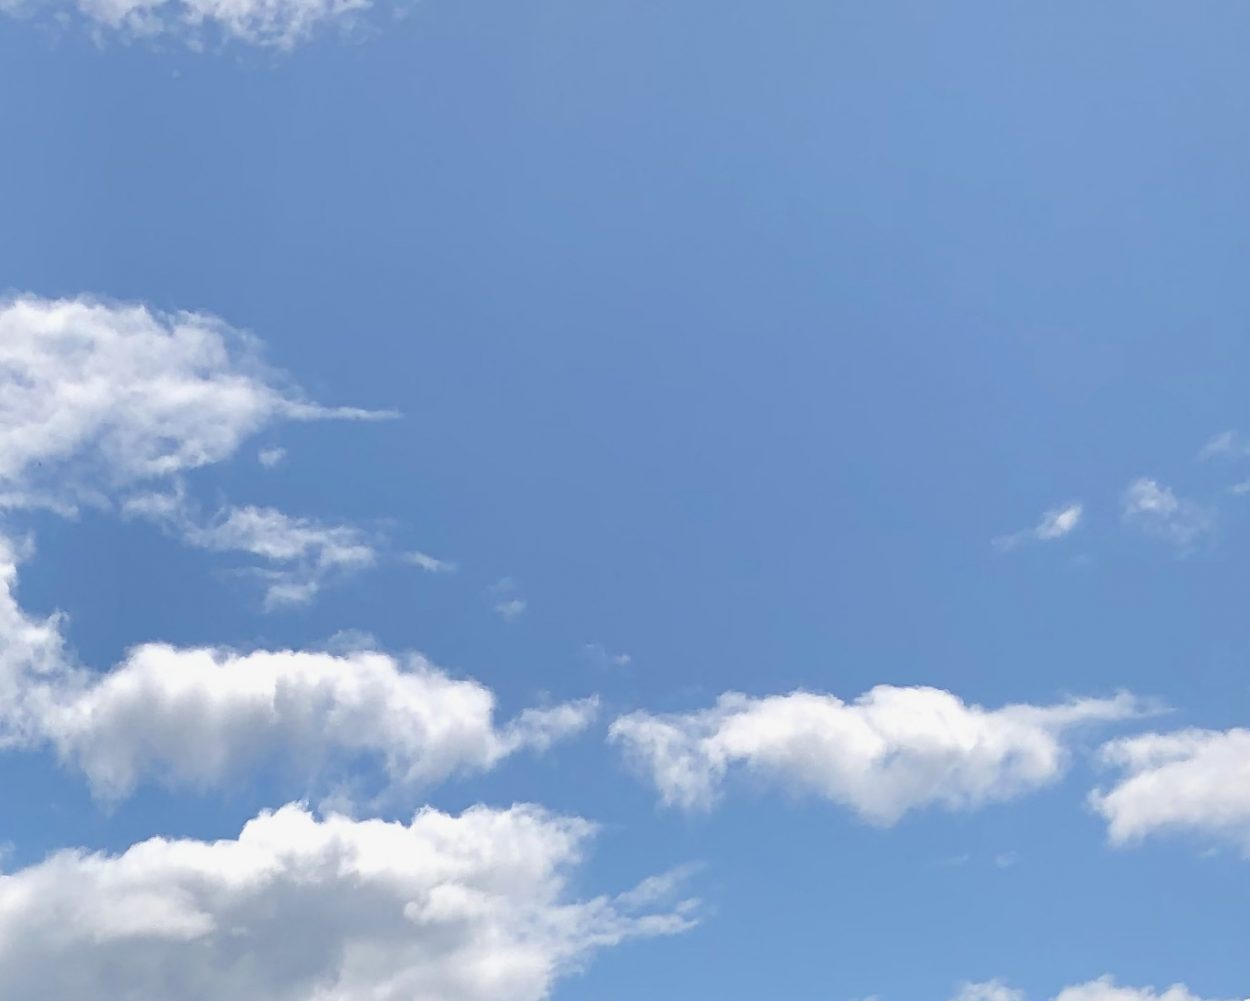 Cumulus clouds against a pale blue sky